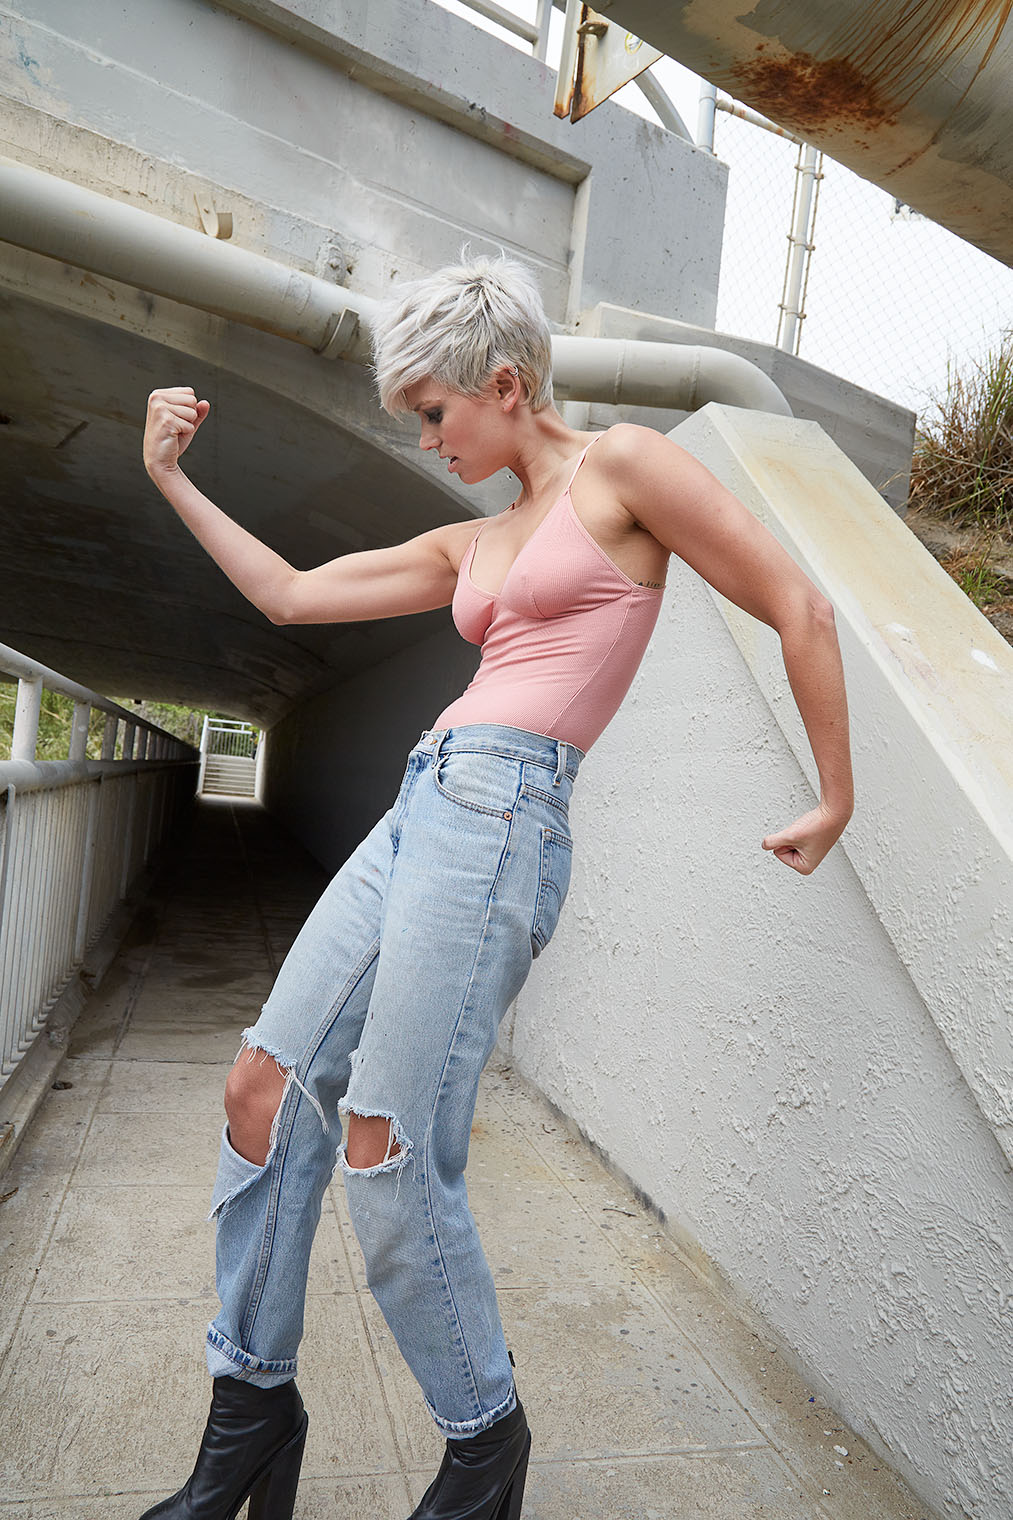 woman flexing muscles in denim and jeans clothing photography shoot -